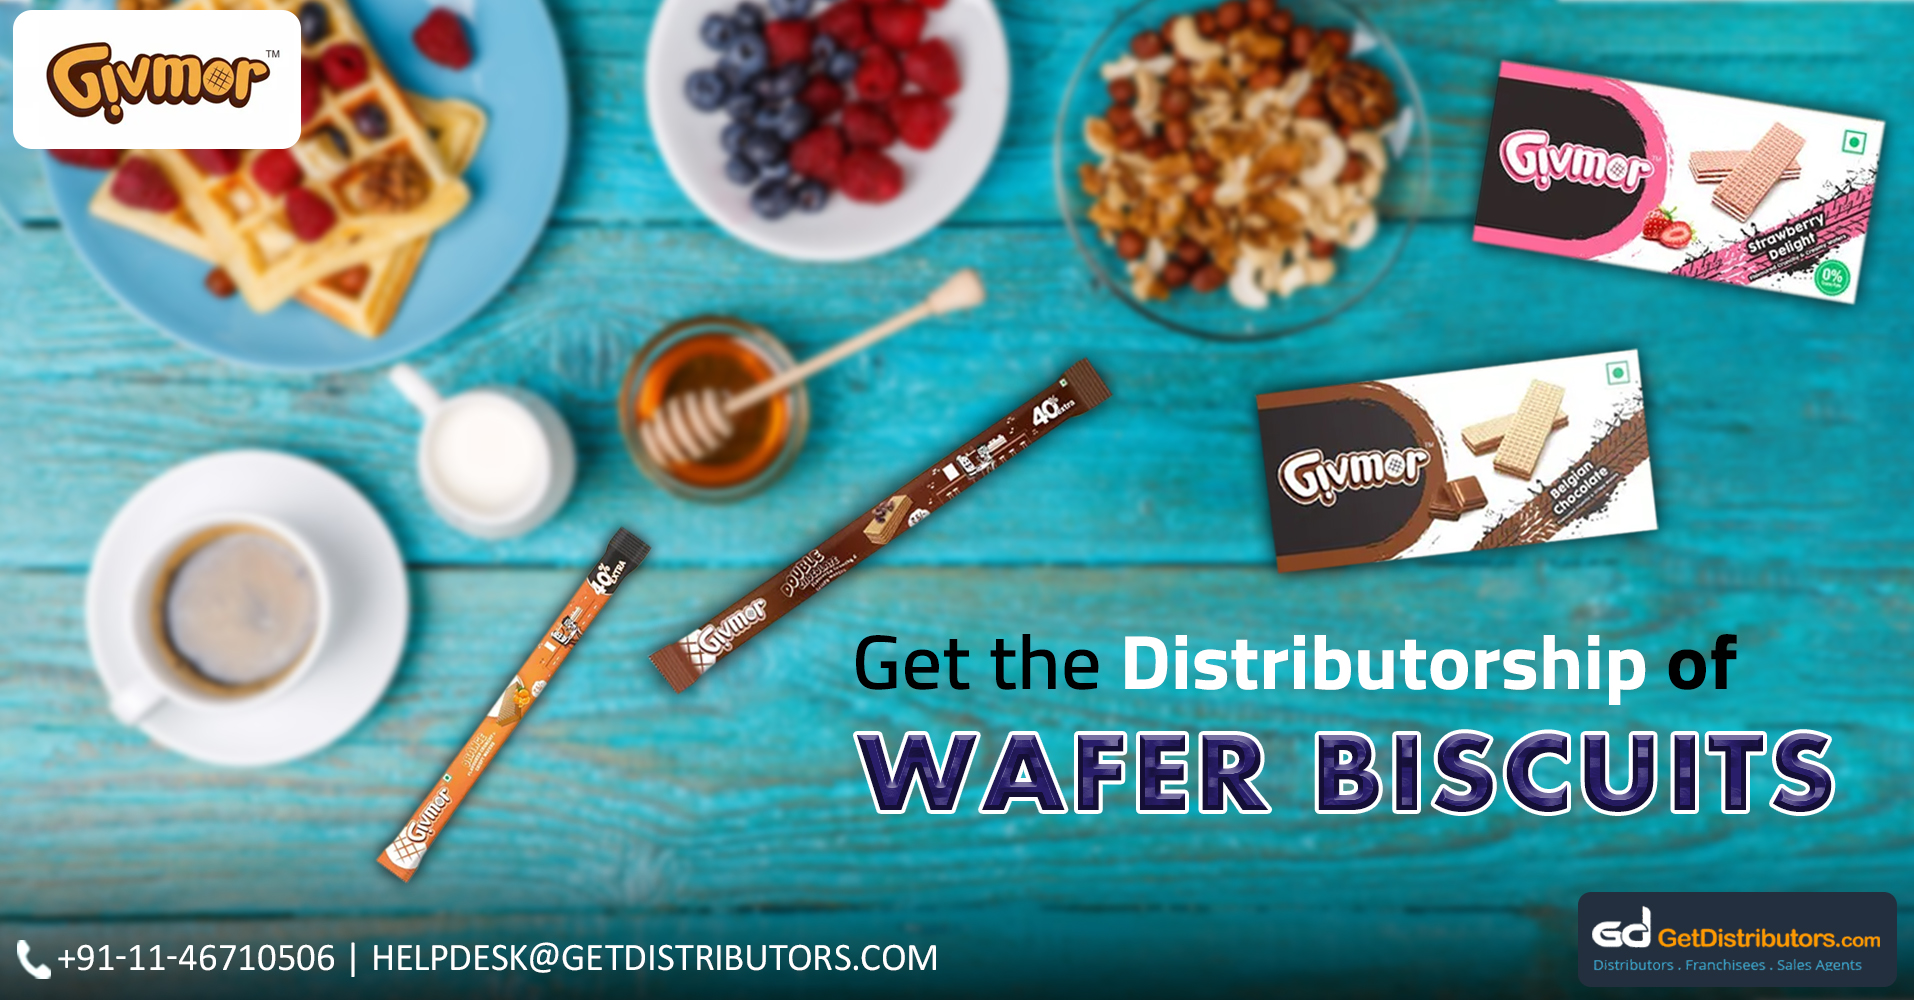 Offering Crunchy & Creamy Wafer Biscuit At Cost-Effective Prices